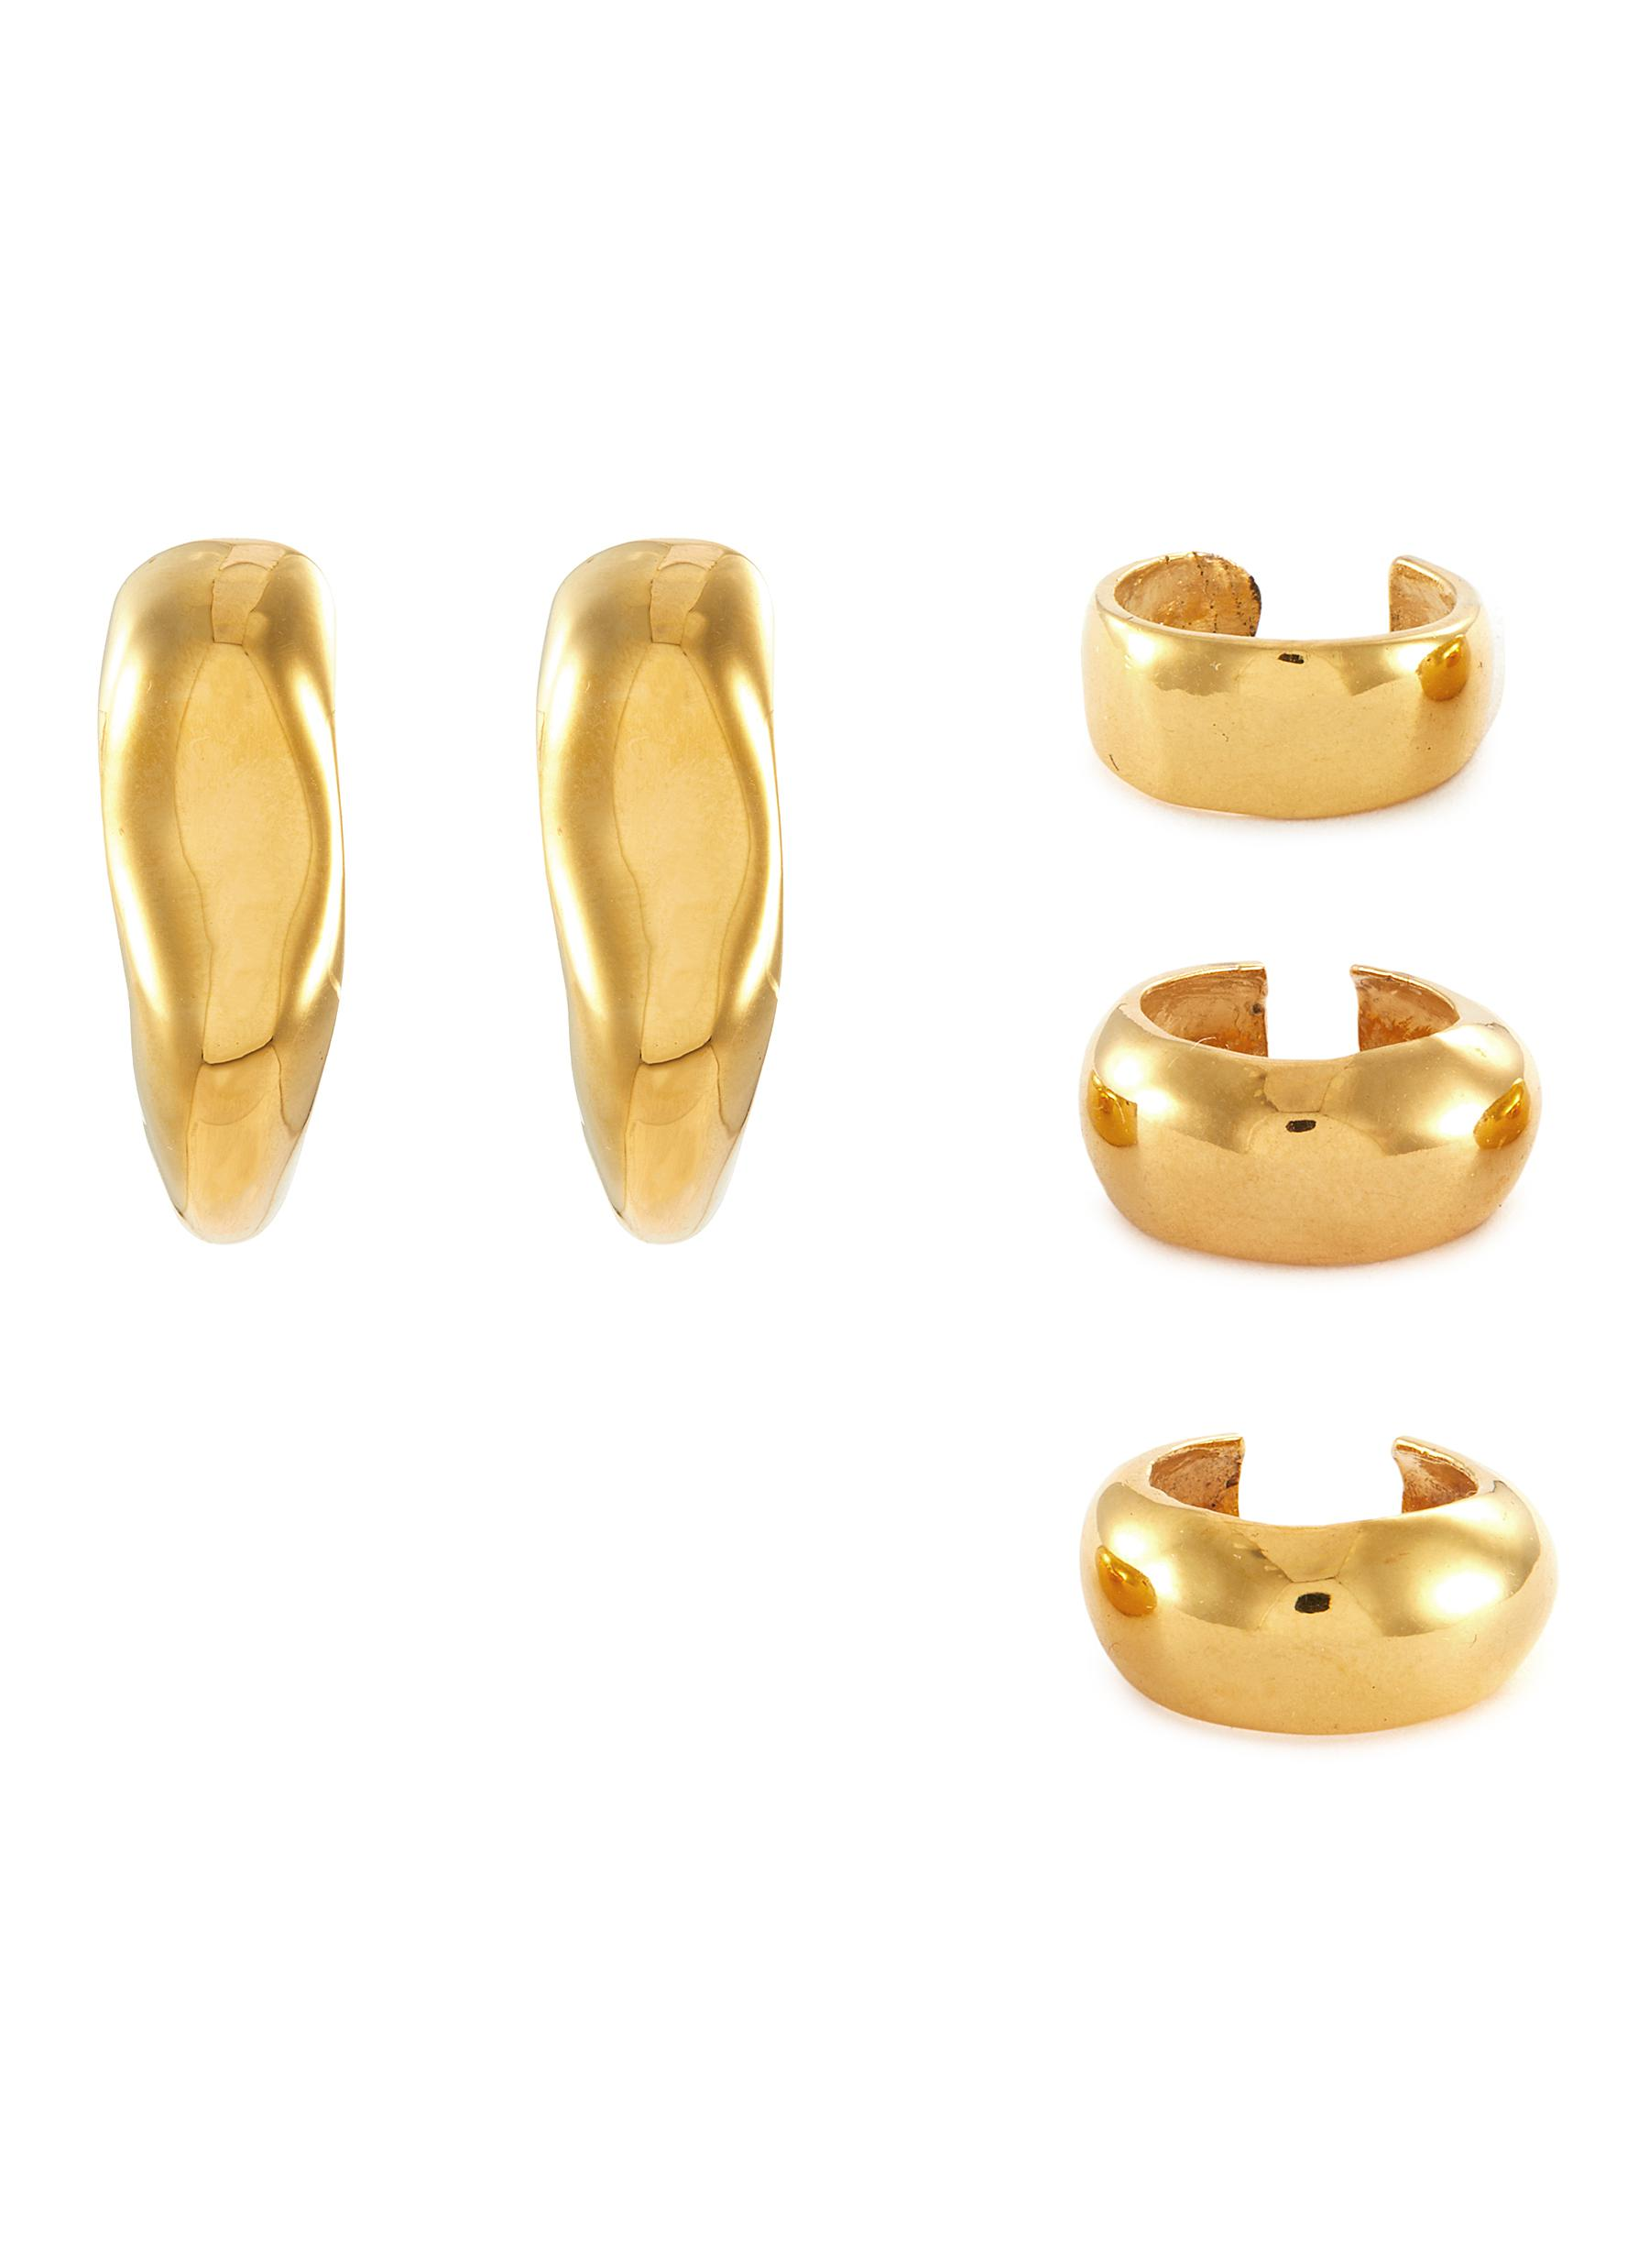 Sunday' 22k Gold-plated Bronze Earring and Ear Cuff Set